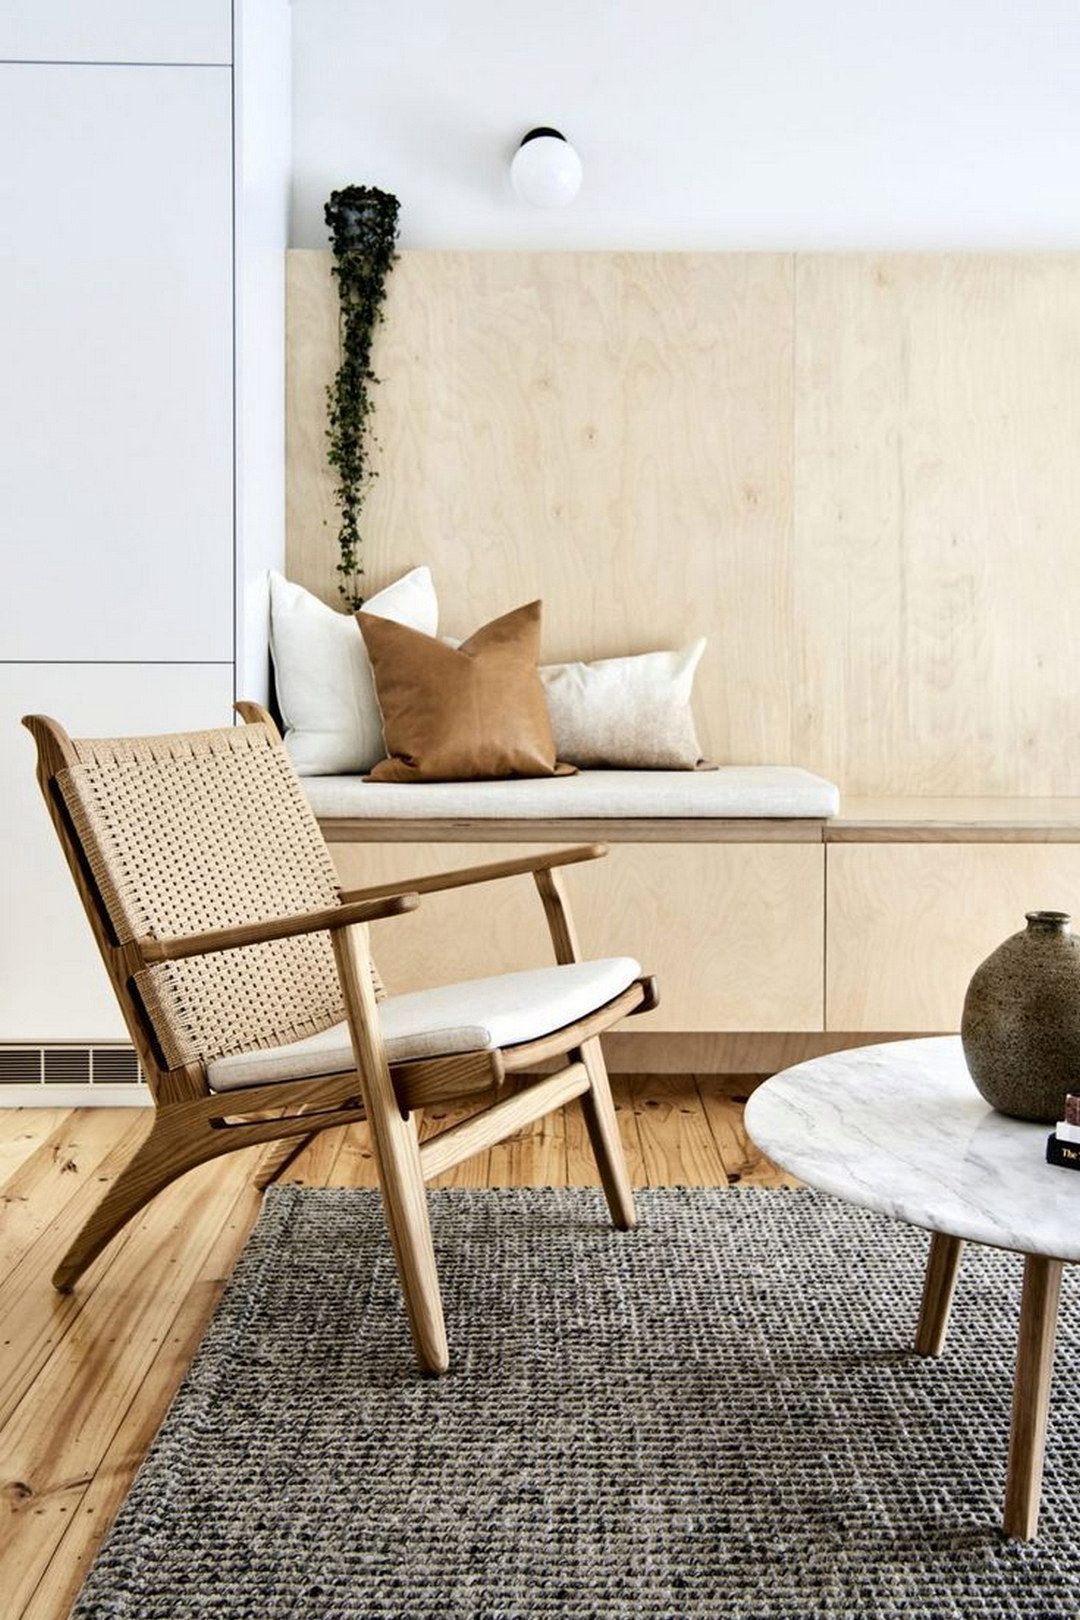 79 Fantastic Scandinavian Chair Design Ideas